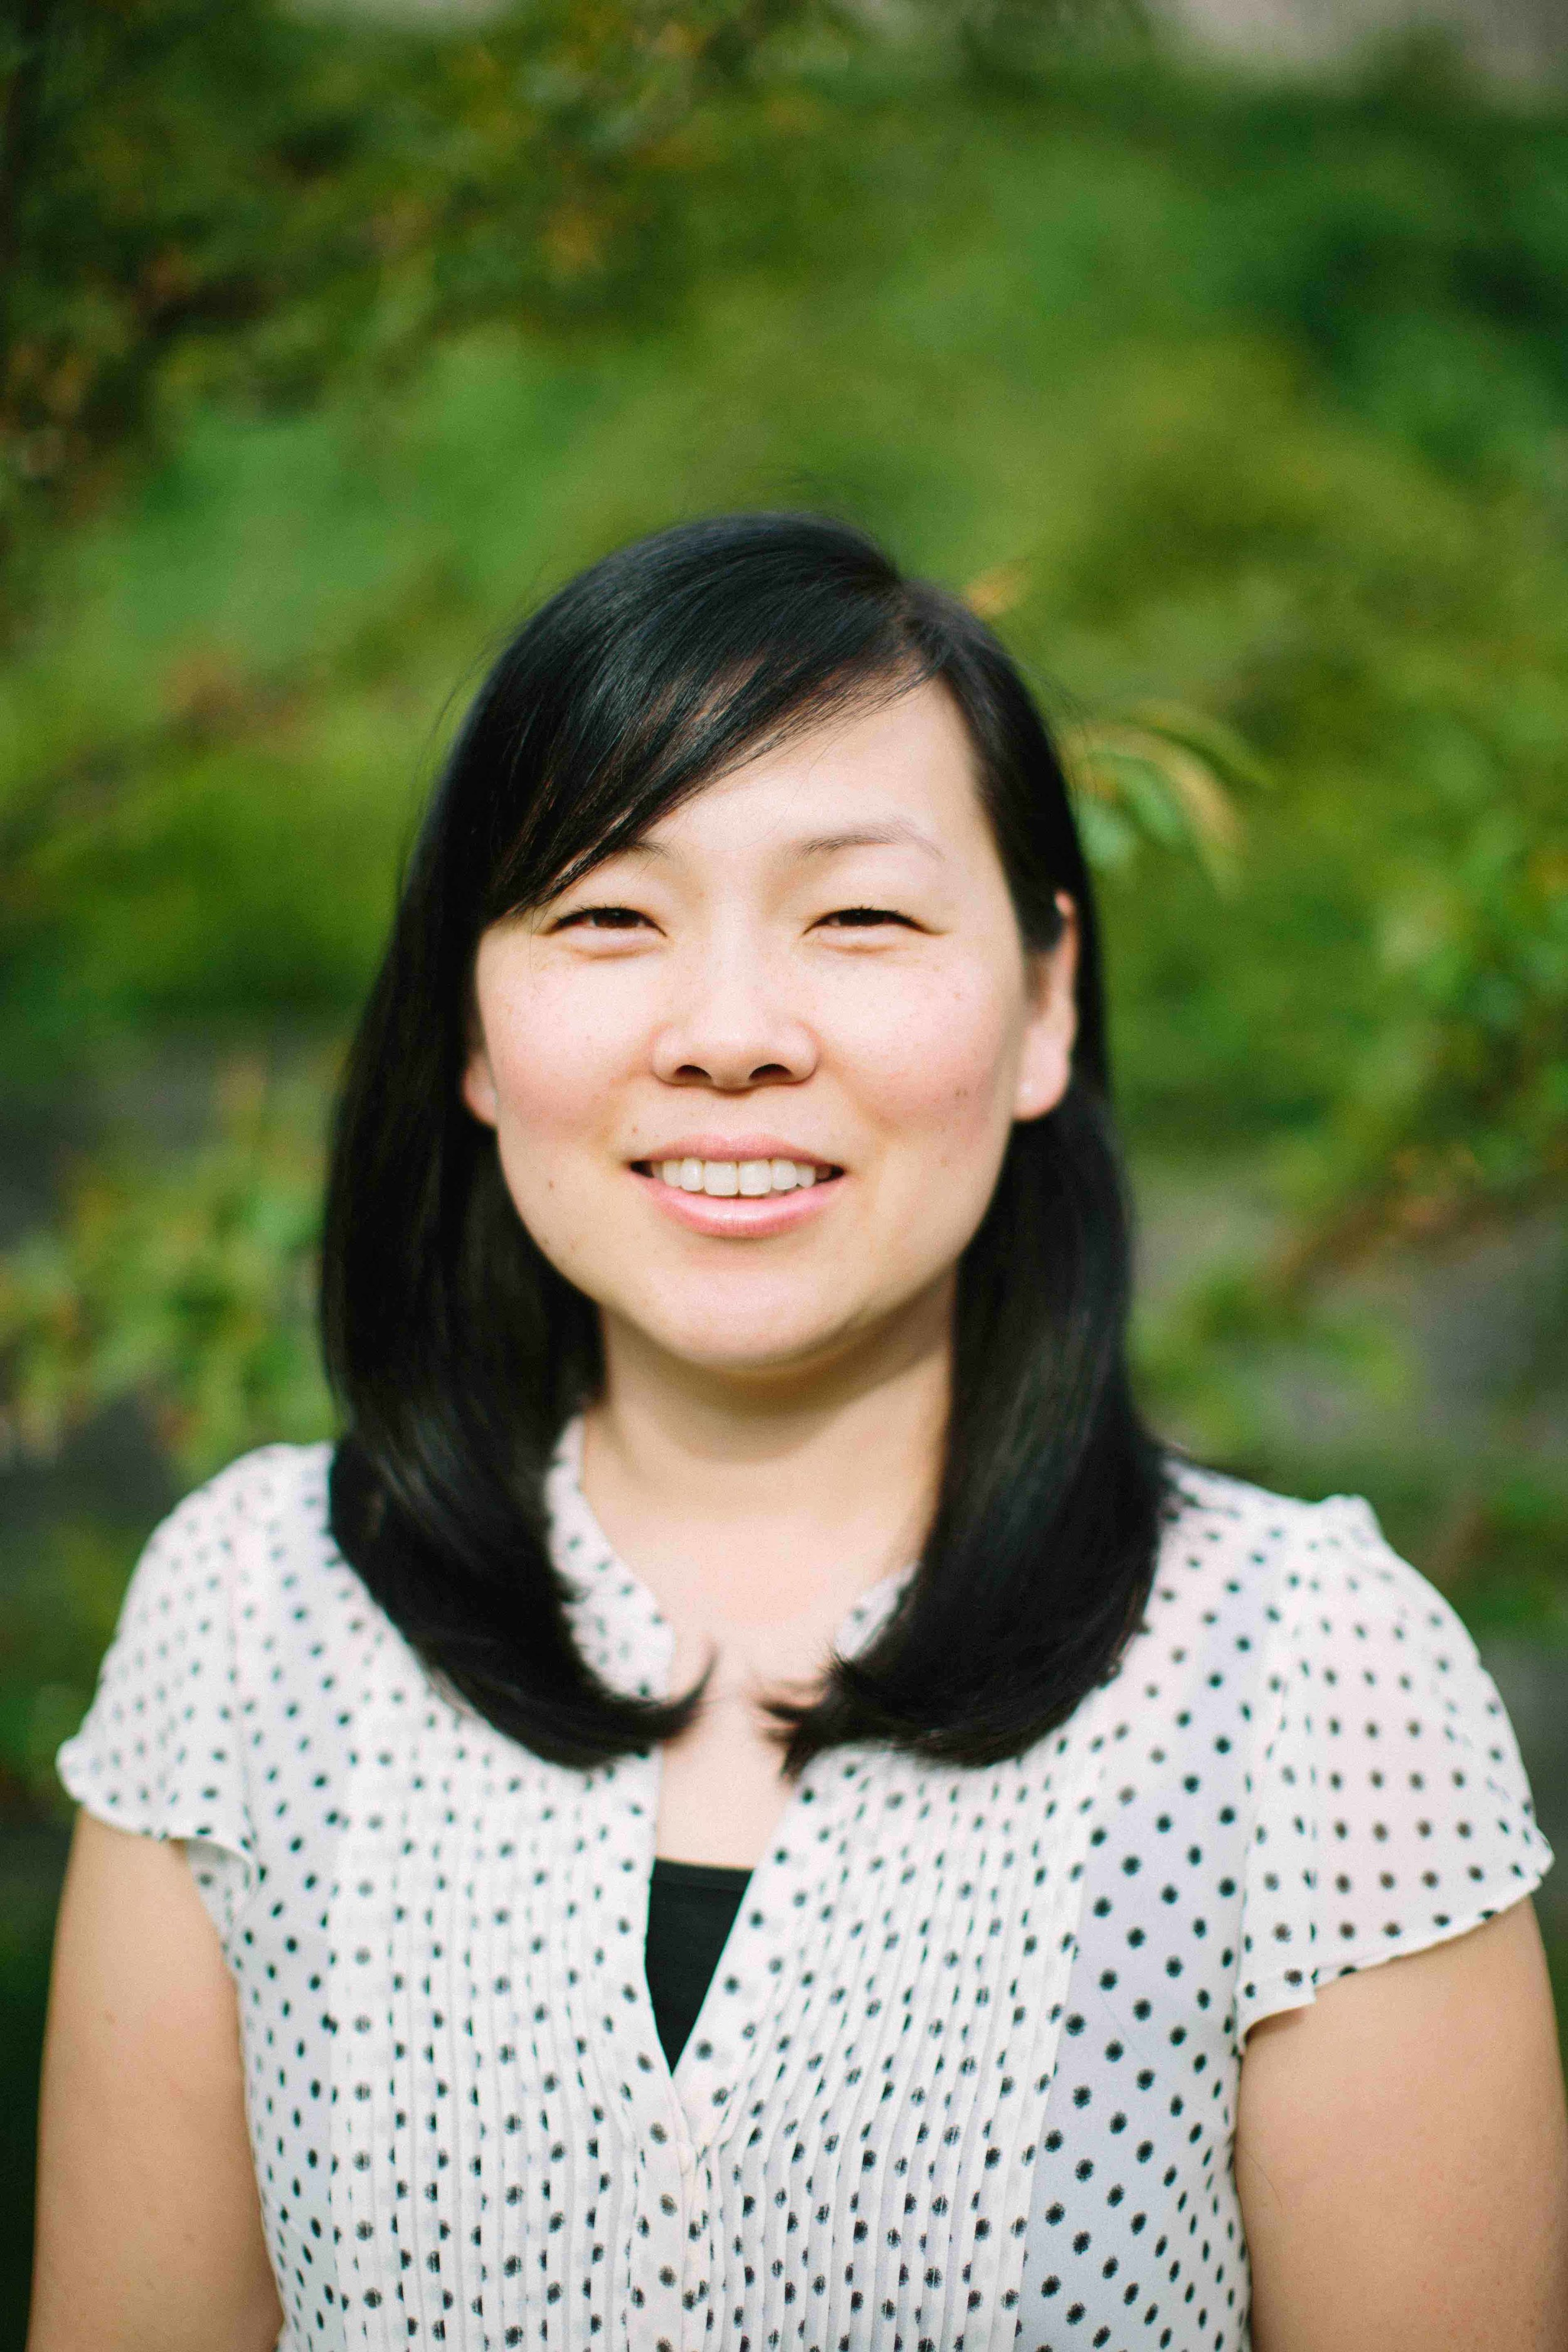 Aeri Yi - Associate Pastor   Aeri leads our amazing Children's Ministry program and helps with building up our home groups. She also supports the worship team, creative arts, and with administration as needed.